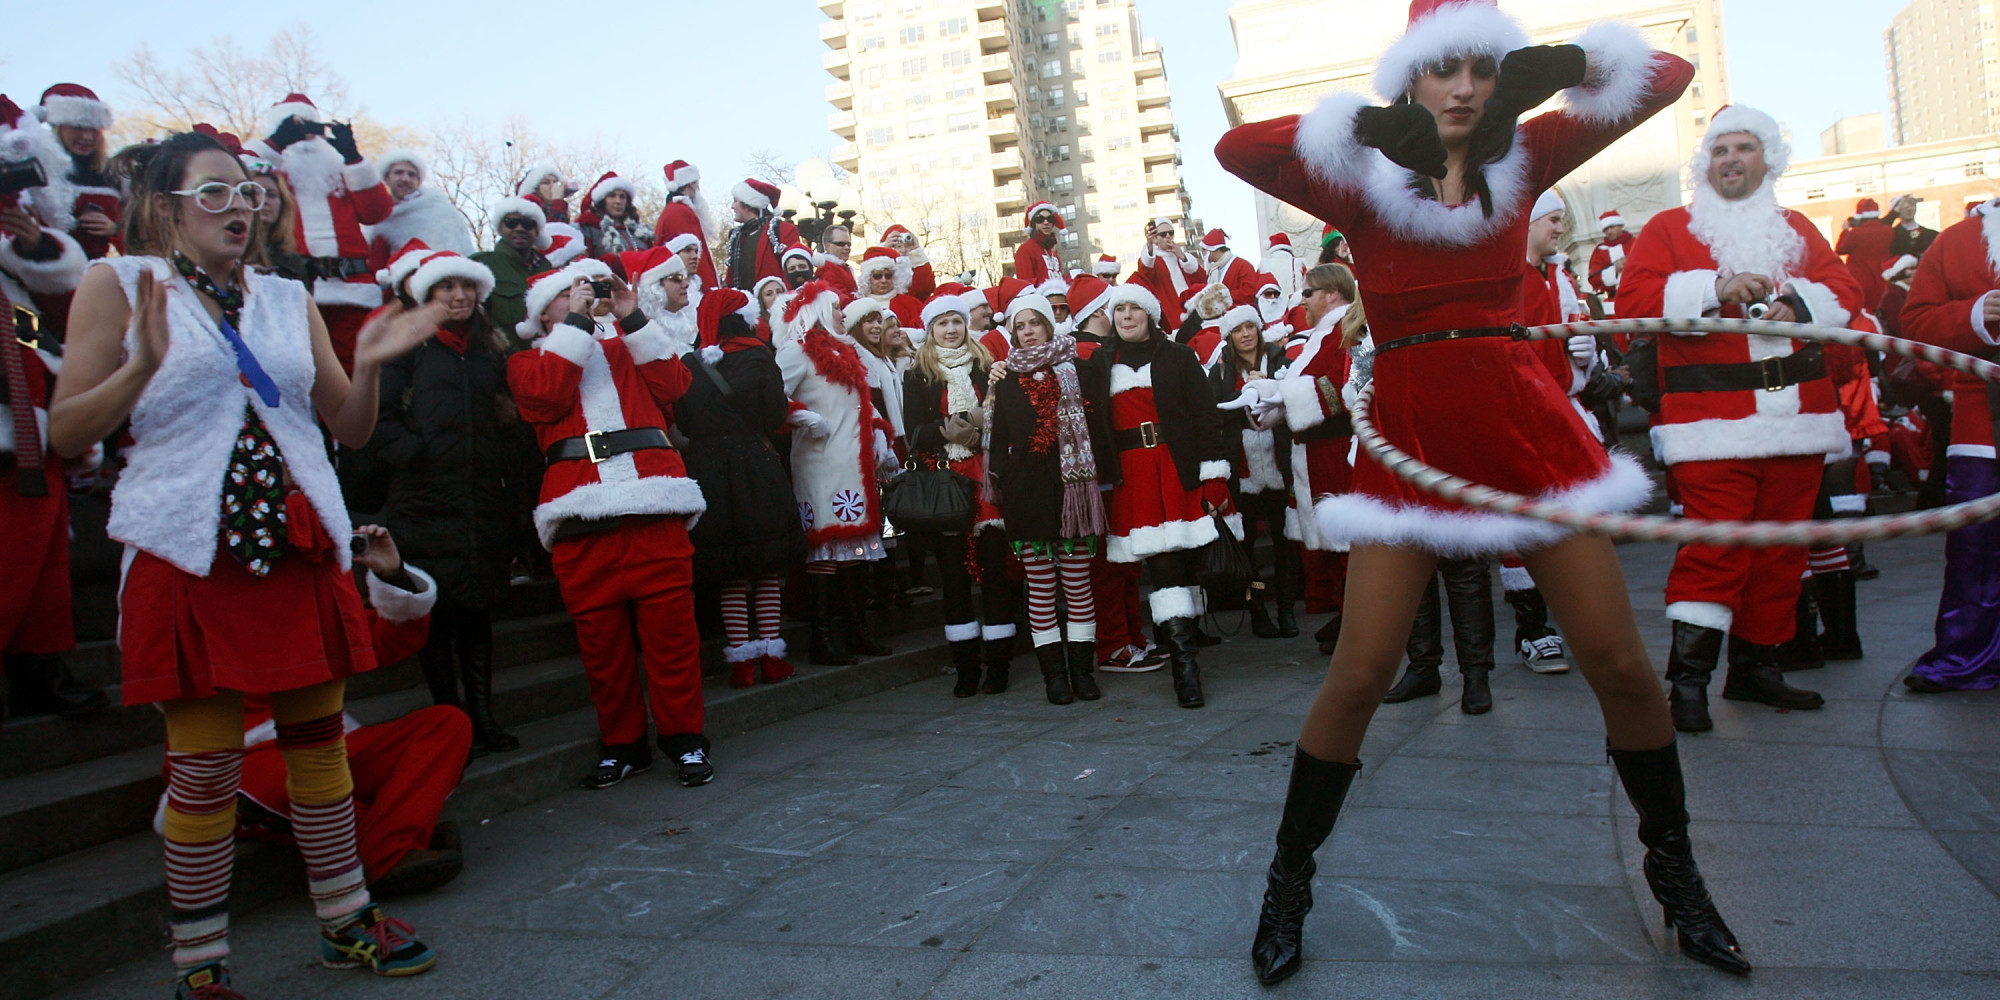 Santacon S Been Too Naughty To Come To Town Midtown